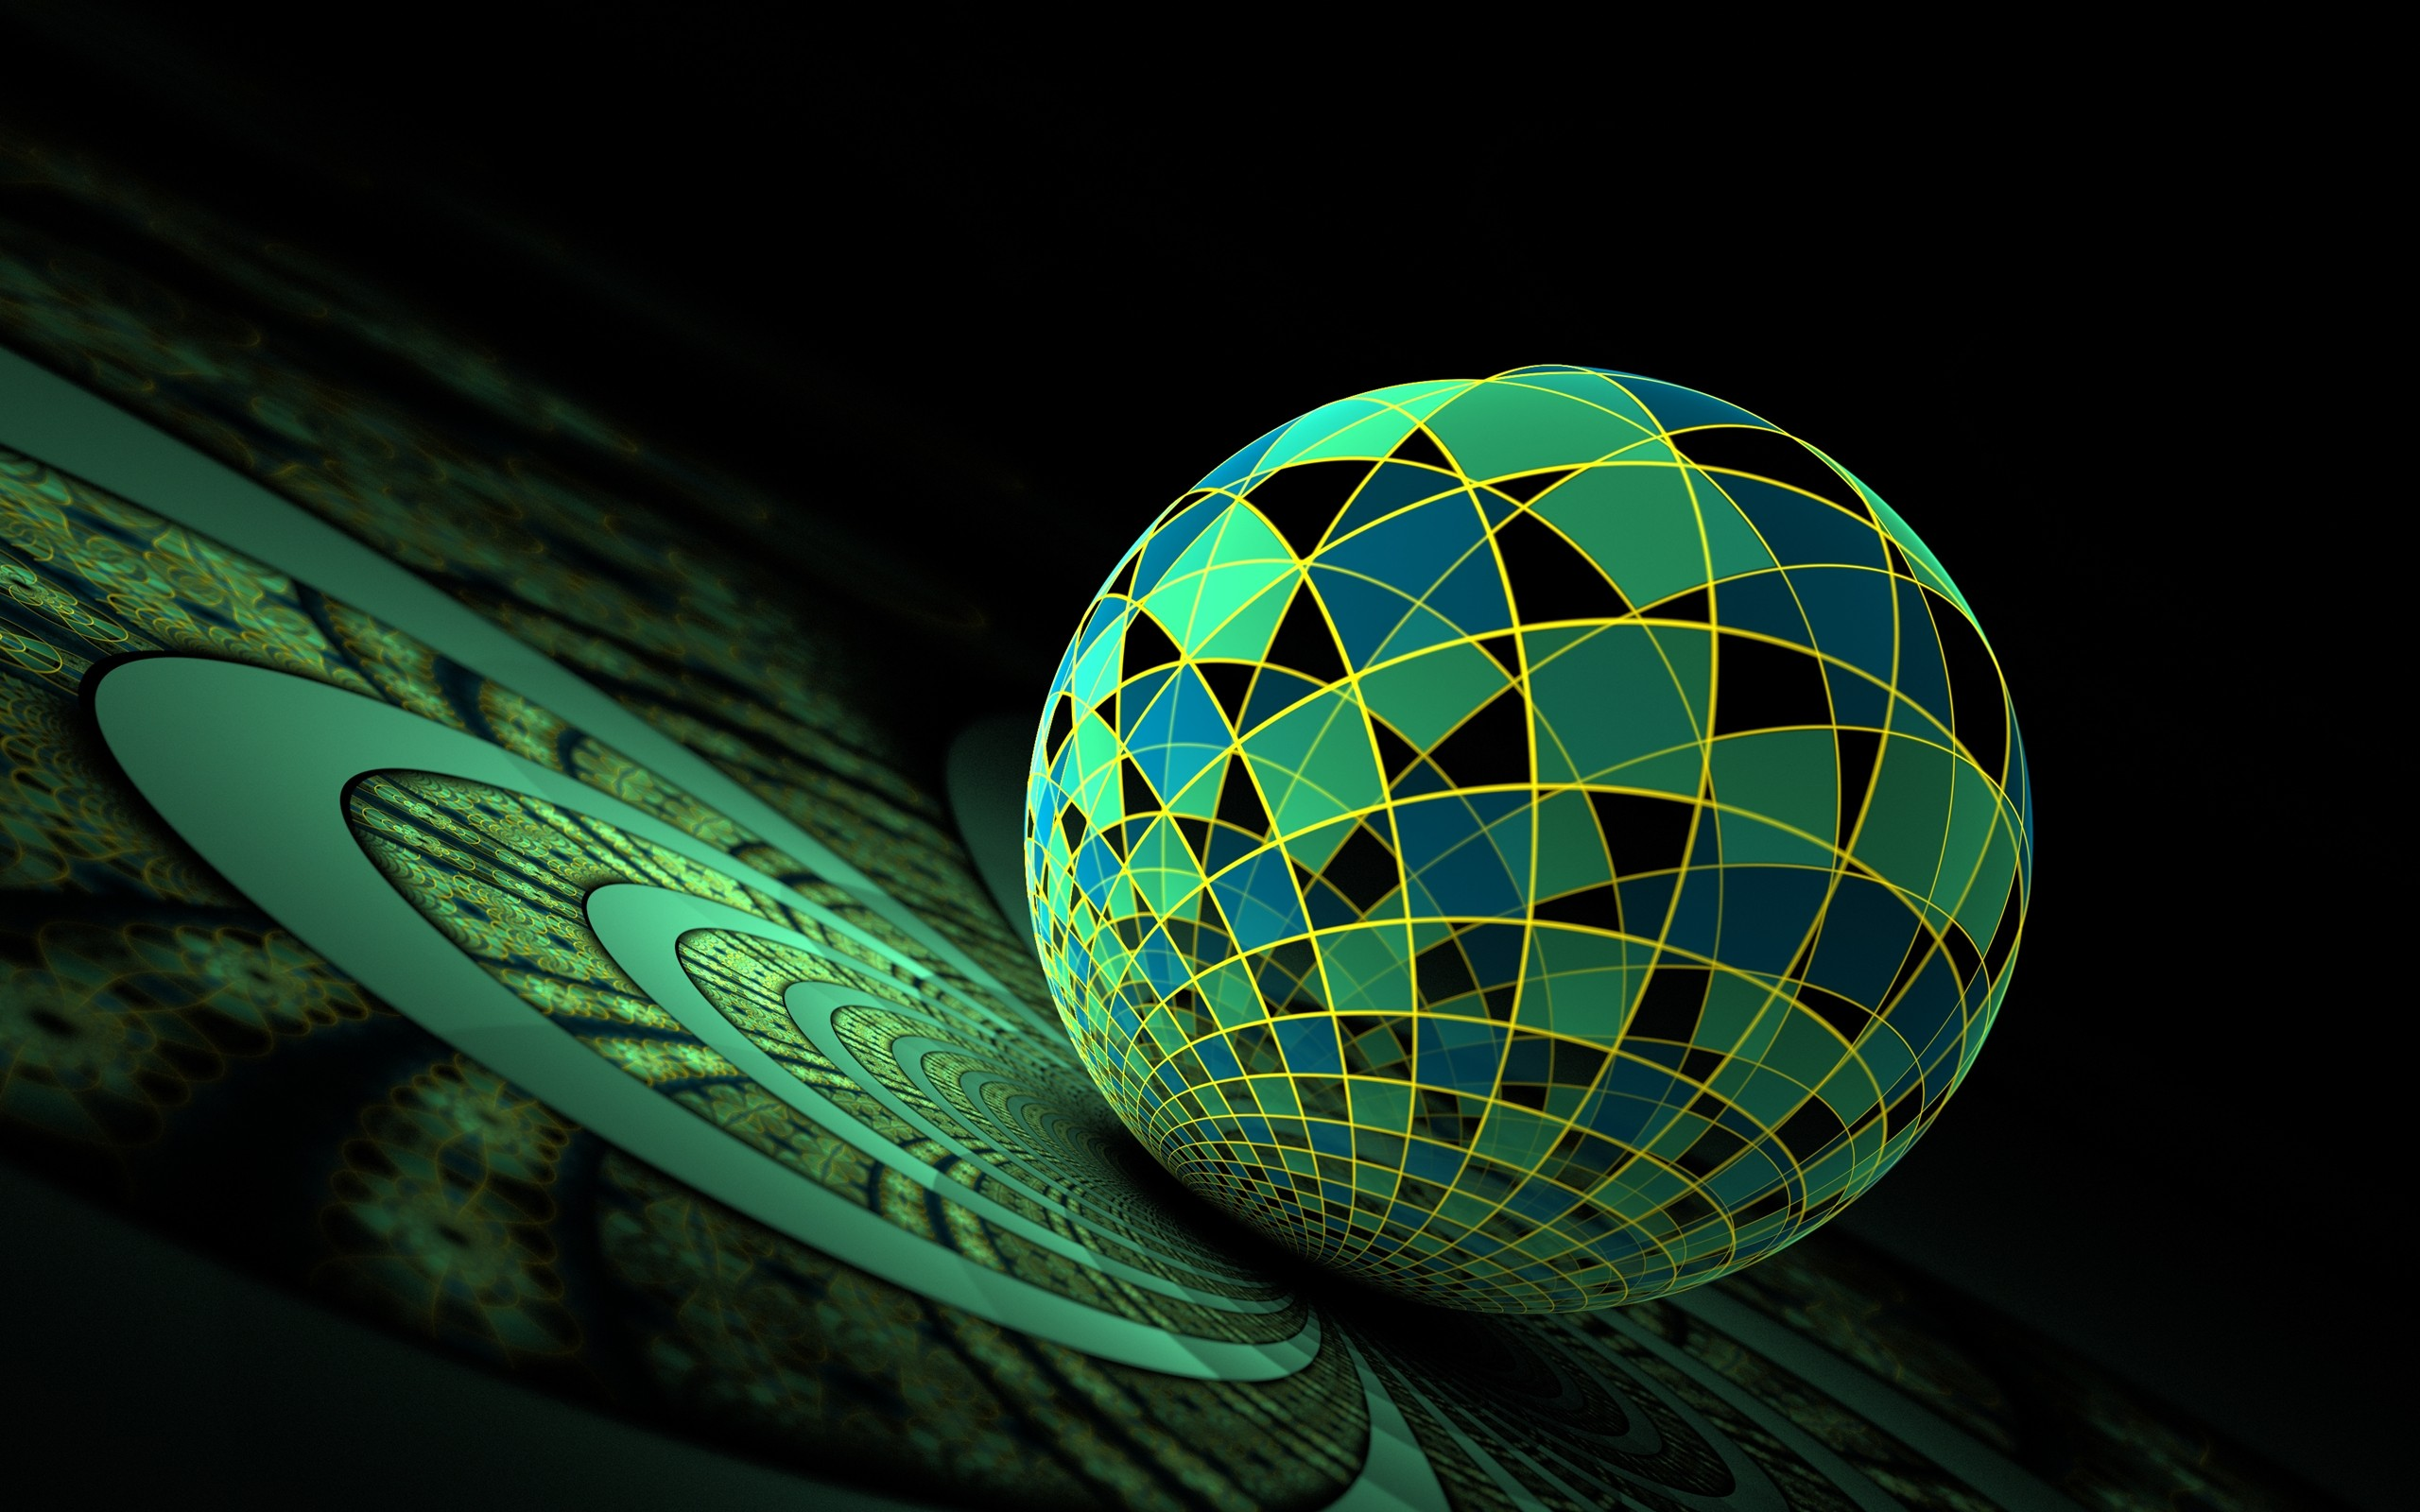 over 50 3d wallpaper images for free desktop download